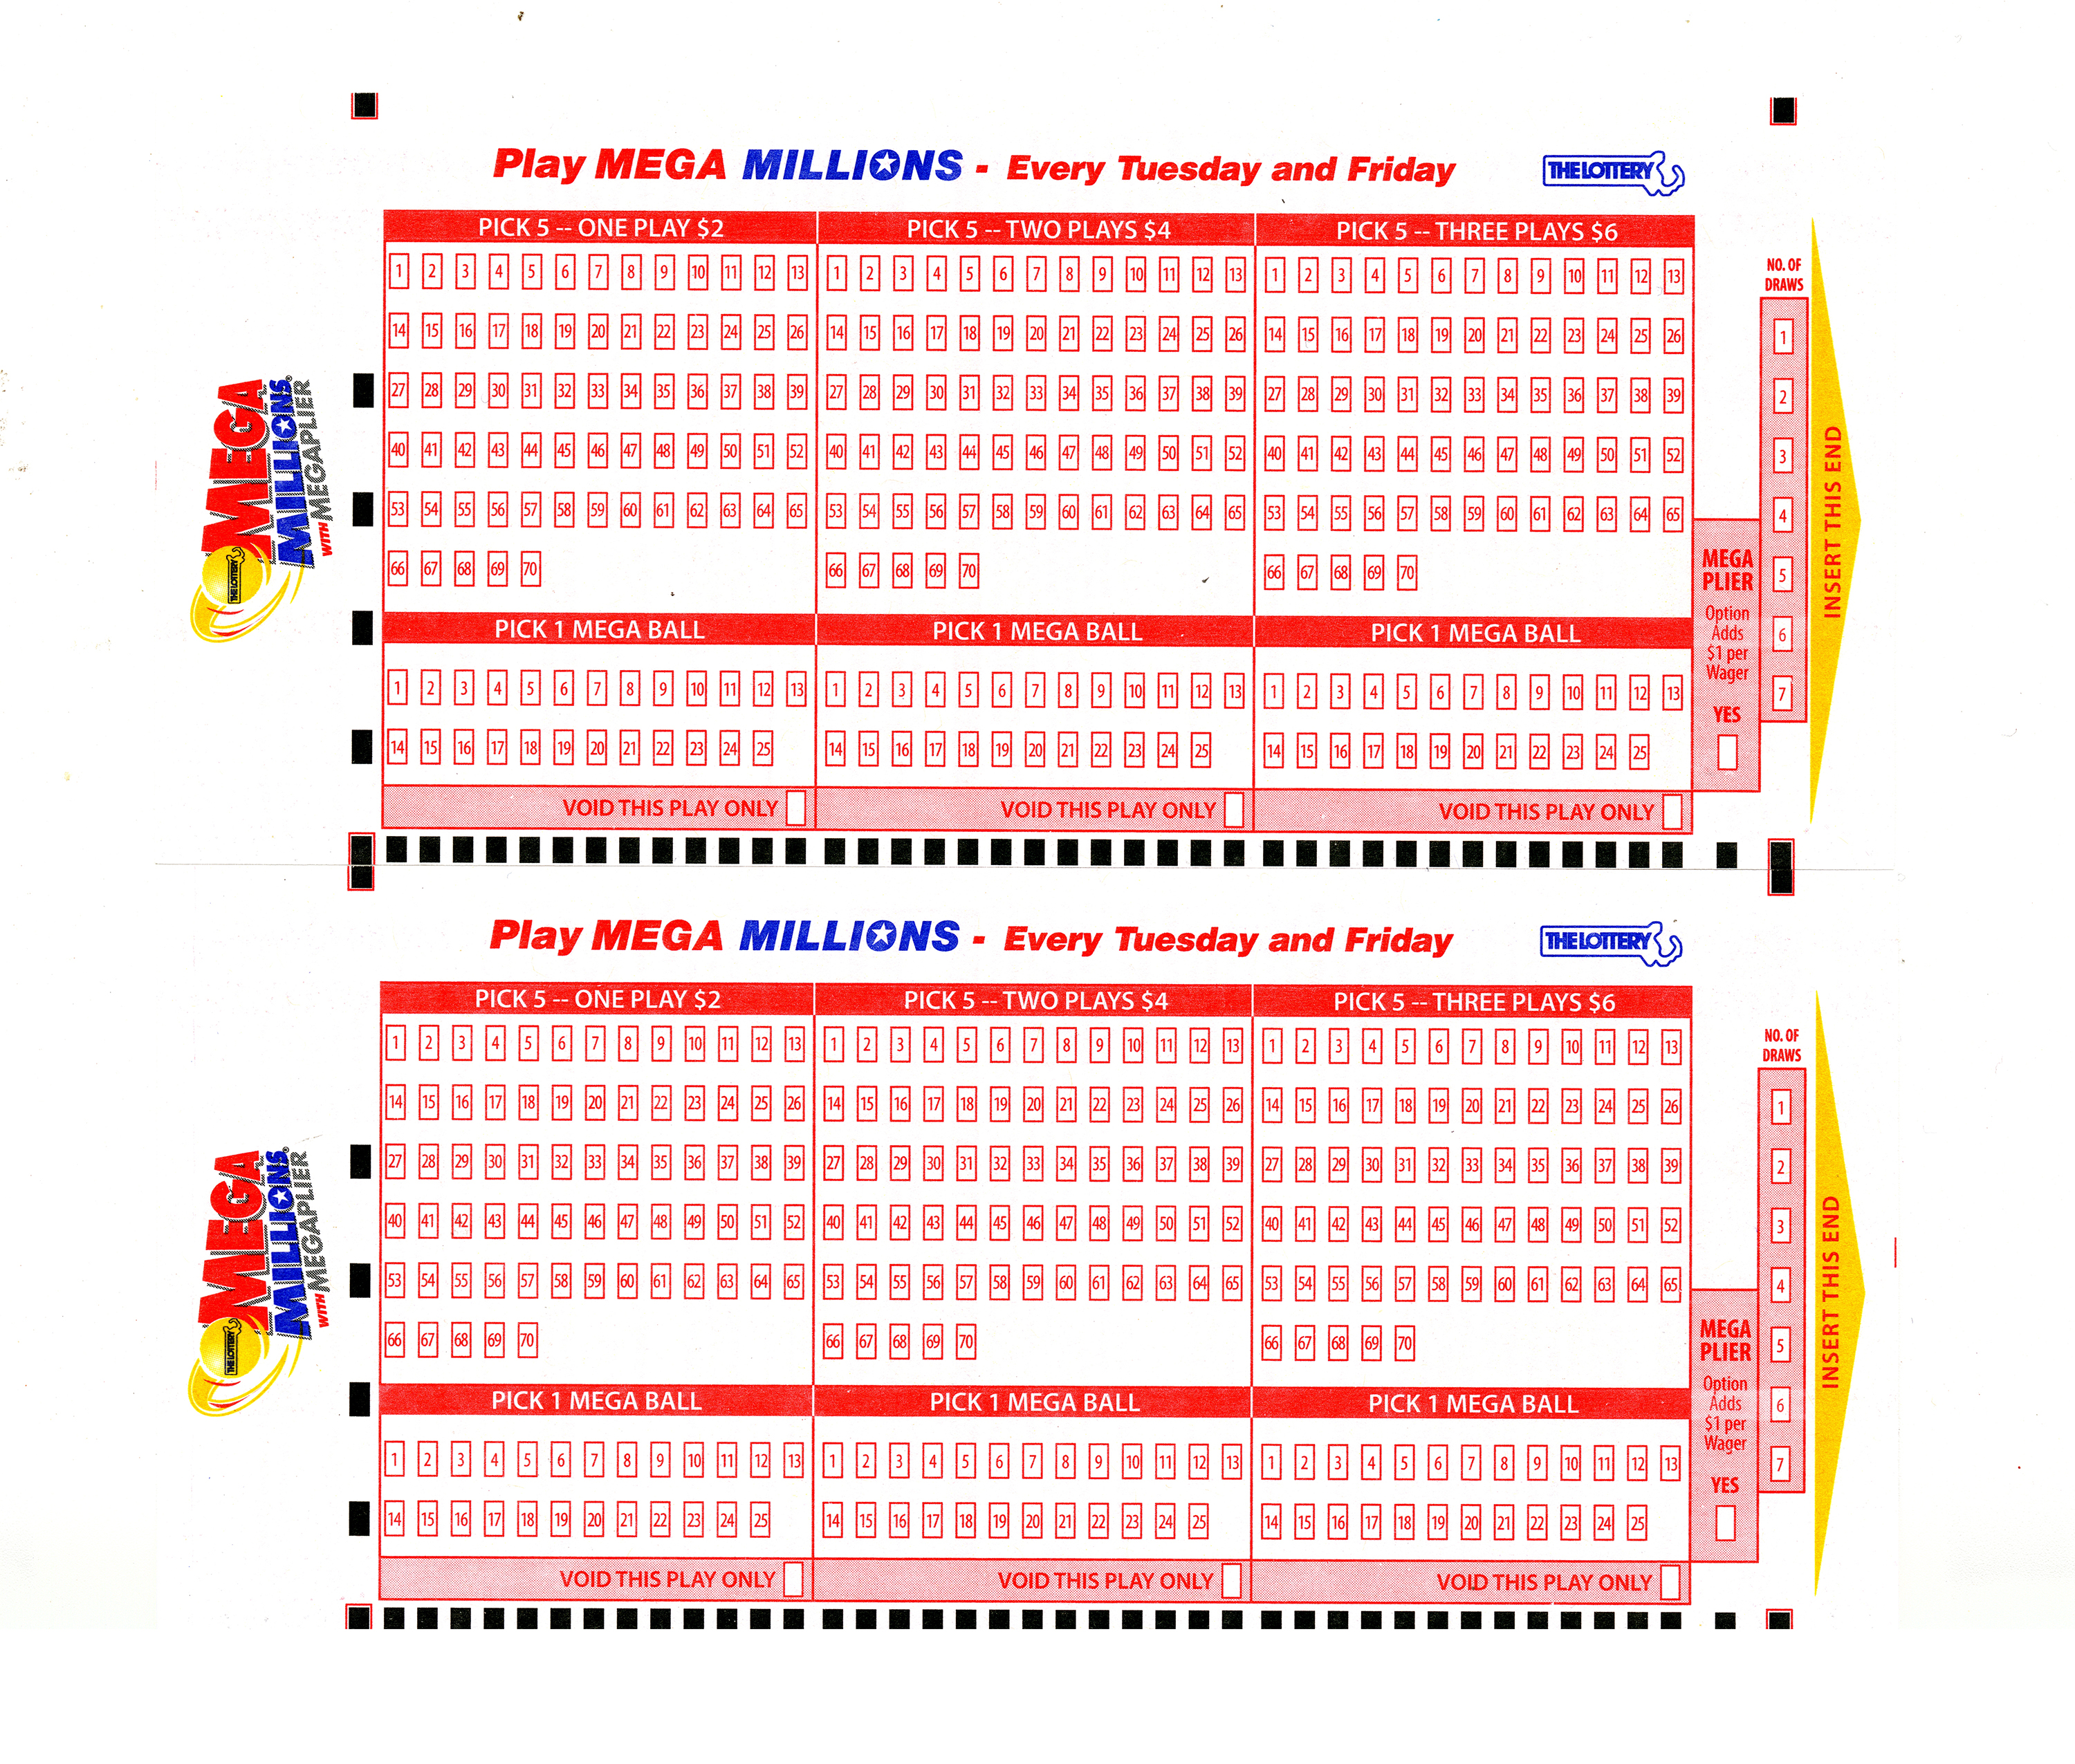 Here's how to play Mega Millions if you've never done it